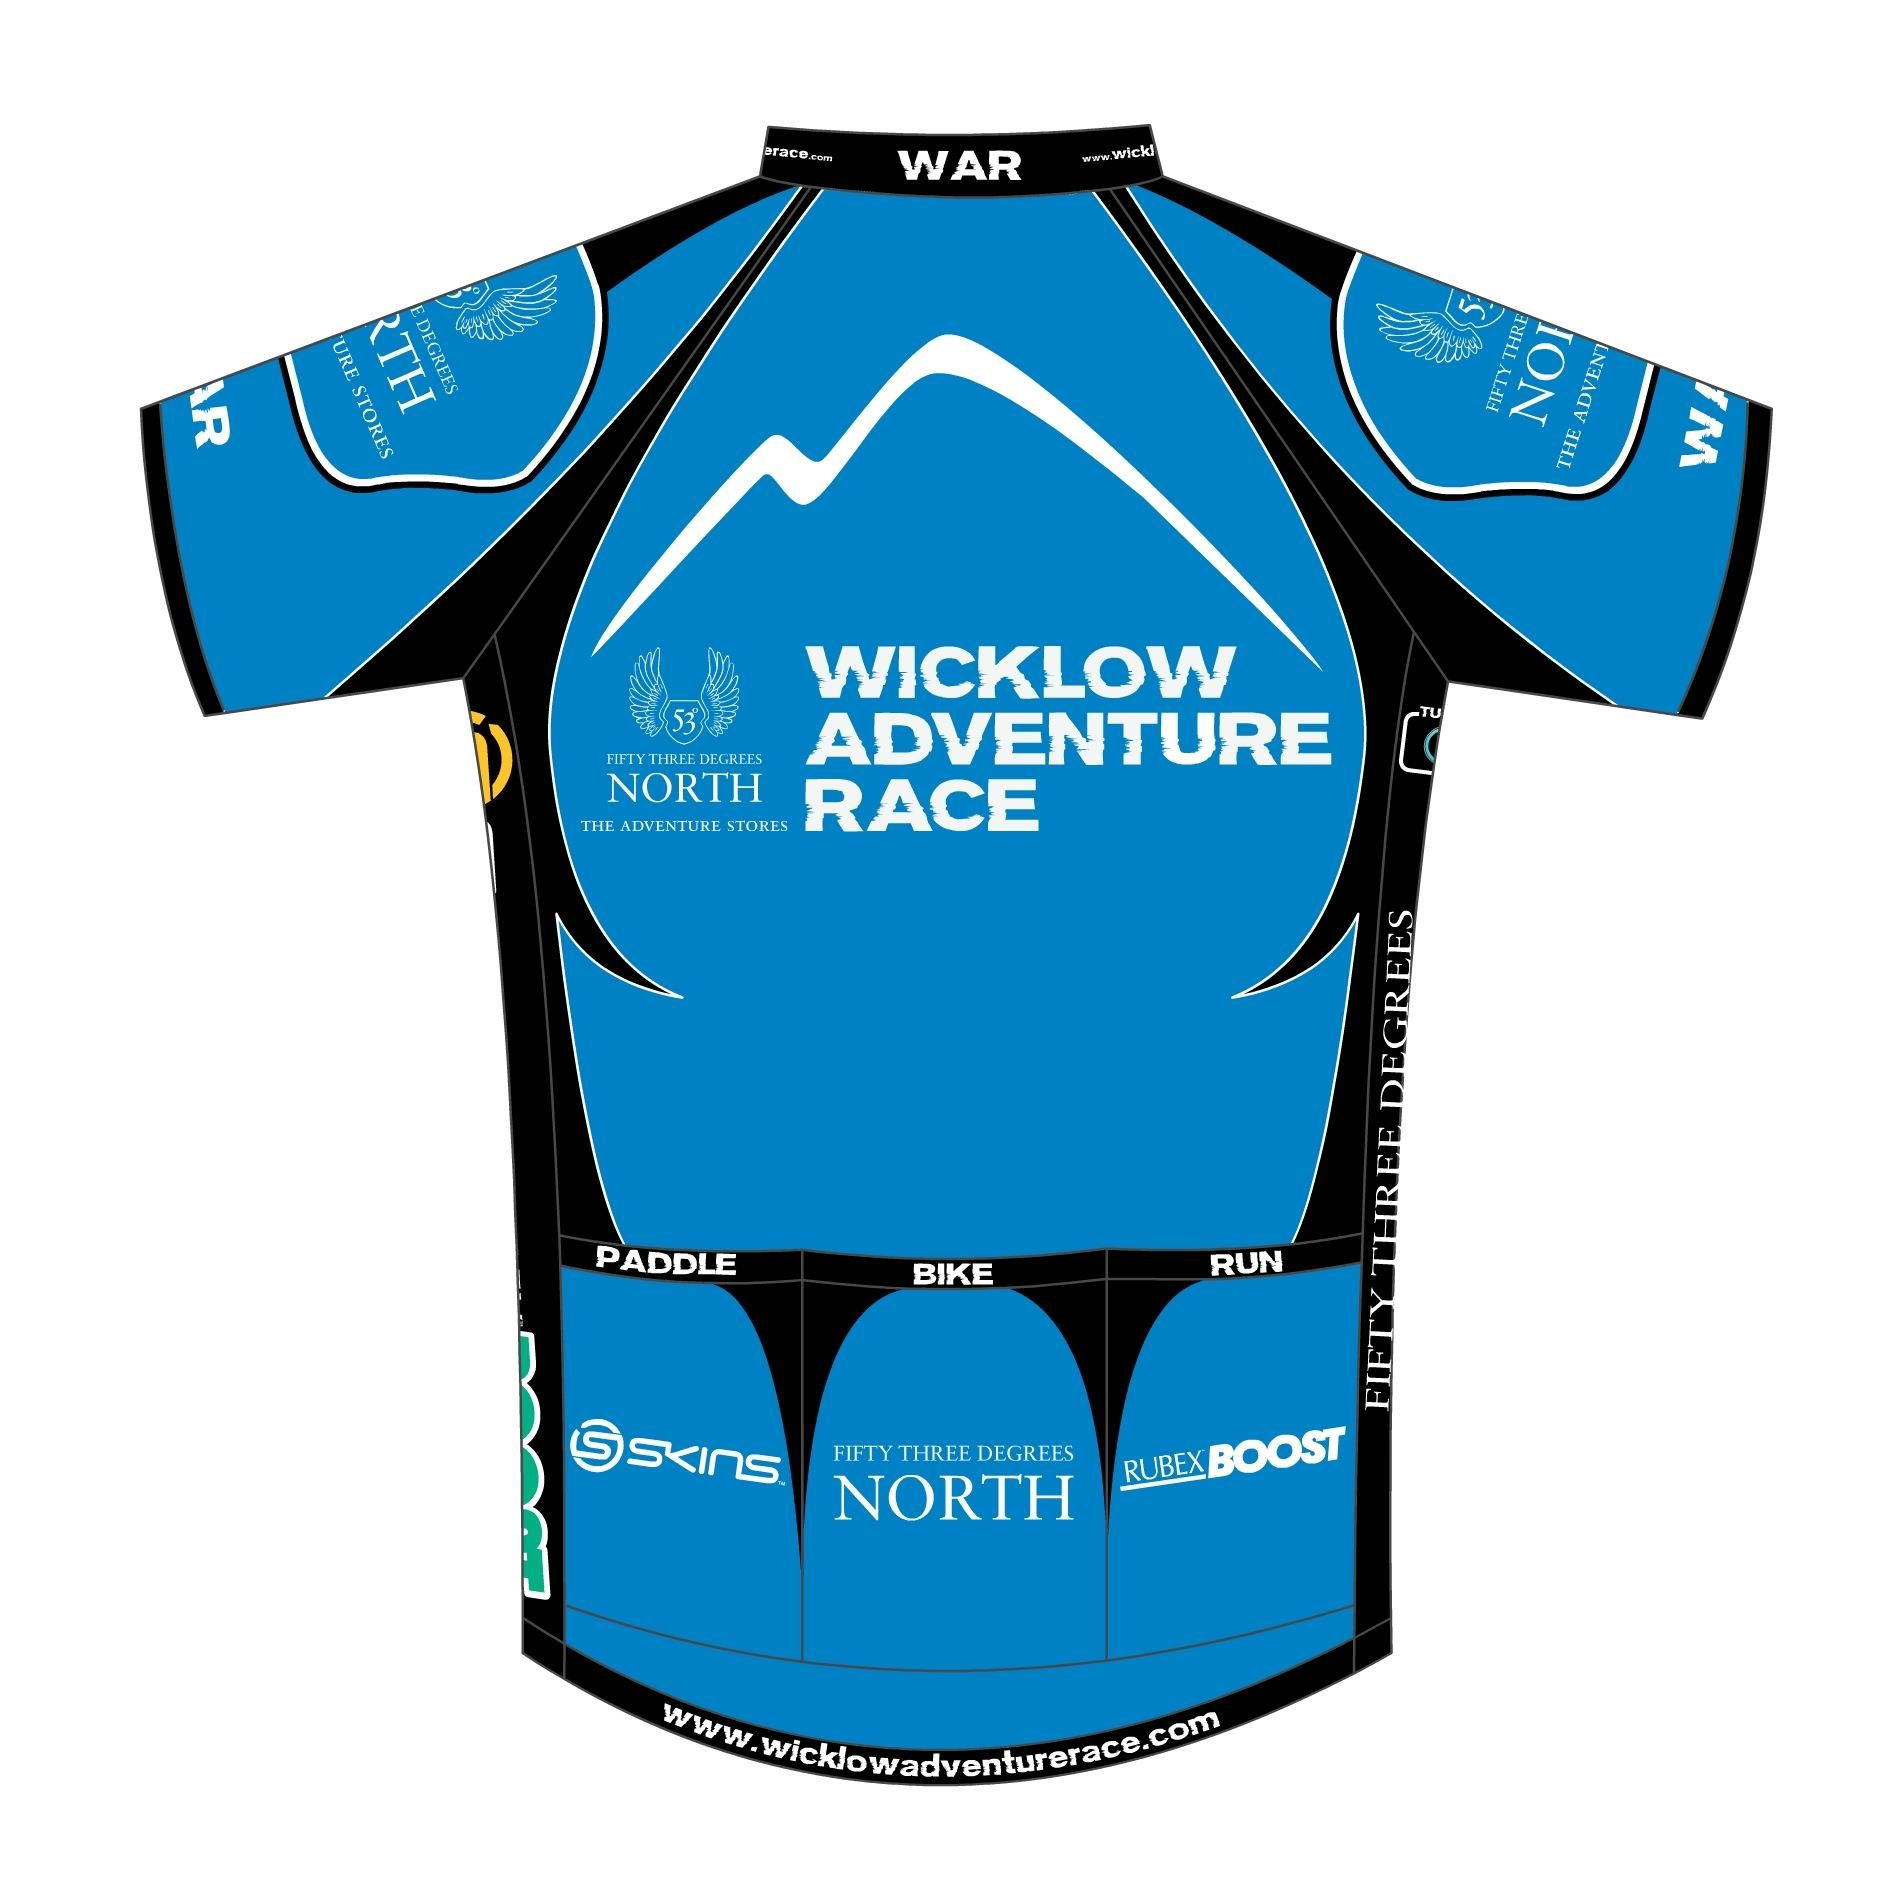 Cycling Jersey For All Competitors Of The 53n War Wicklow Adventure Race Www Wicklowadventurerace Com Cycling Jersey Adventure Racing